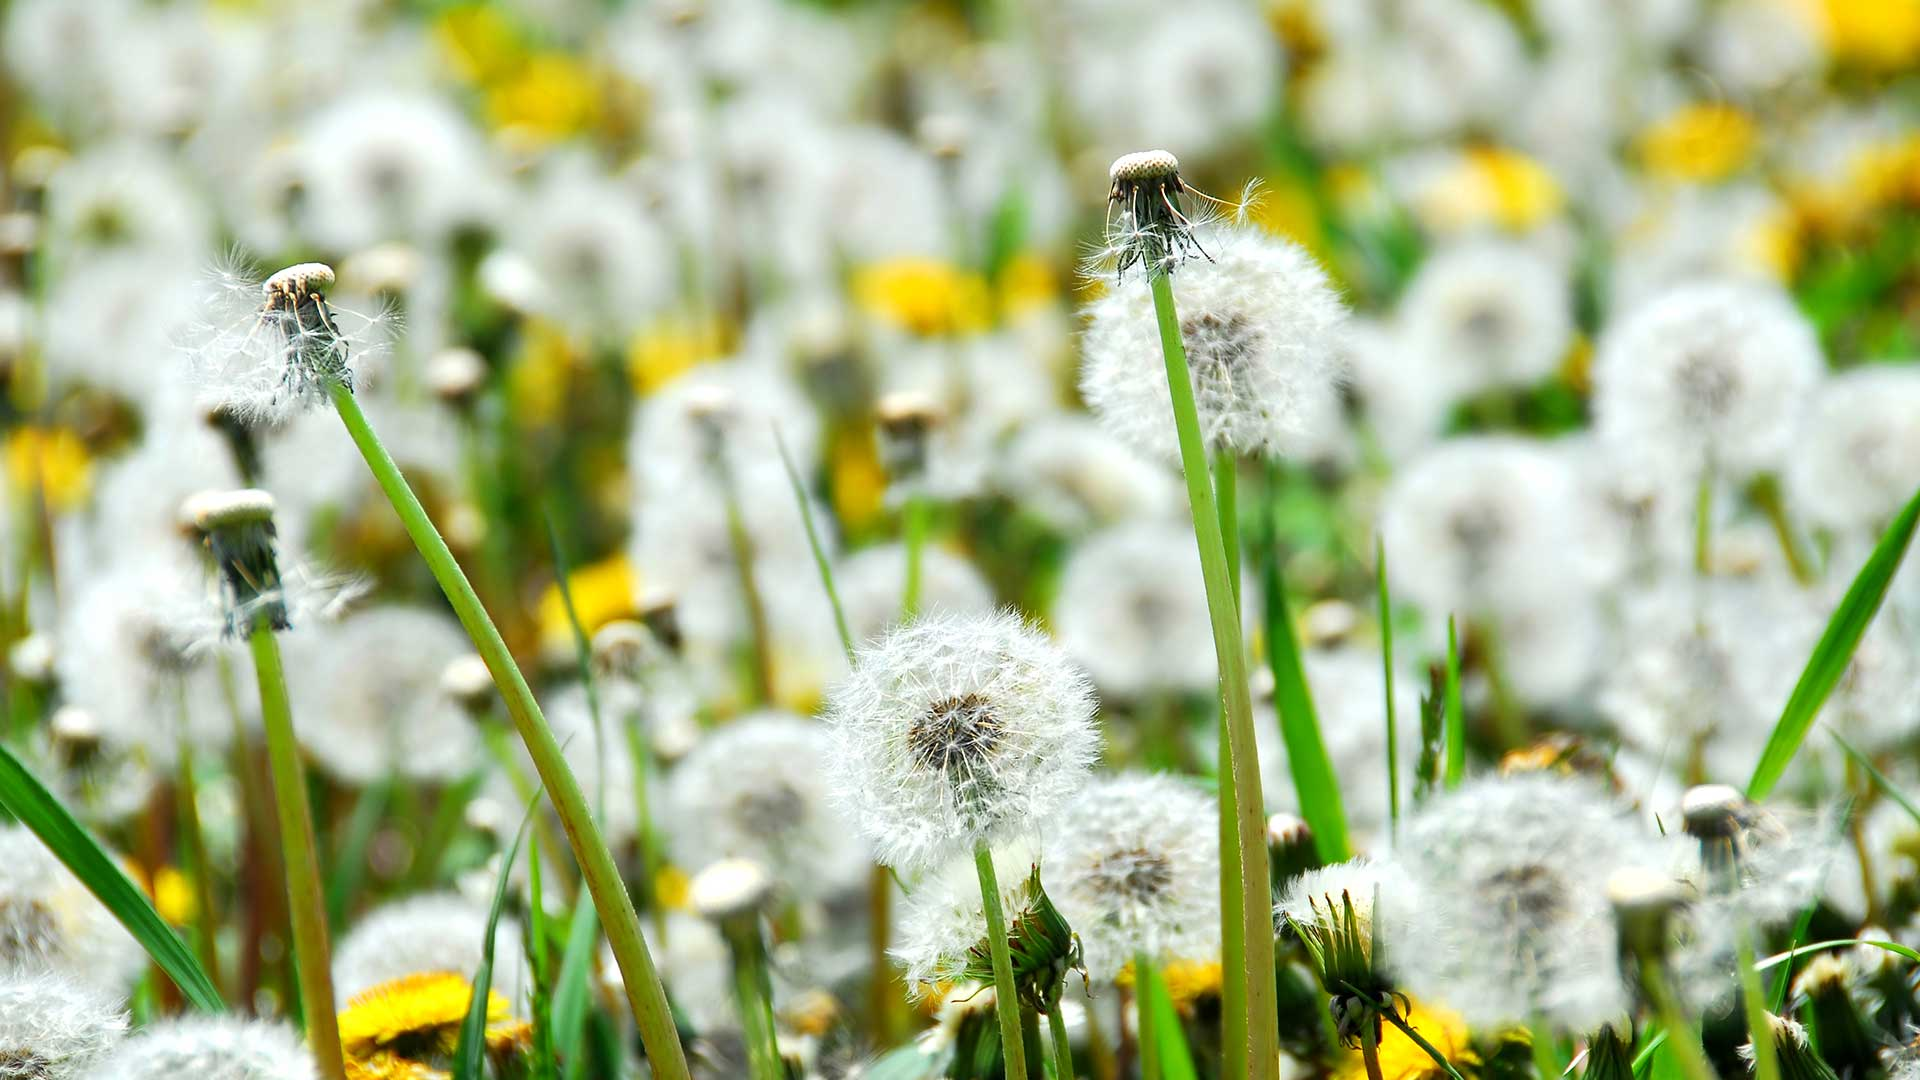 Close up photo of dandelions growing on a Macomb, MI property.